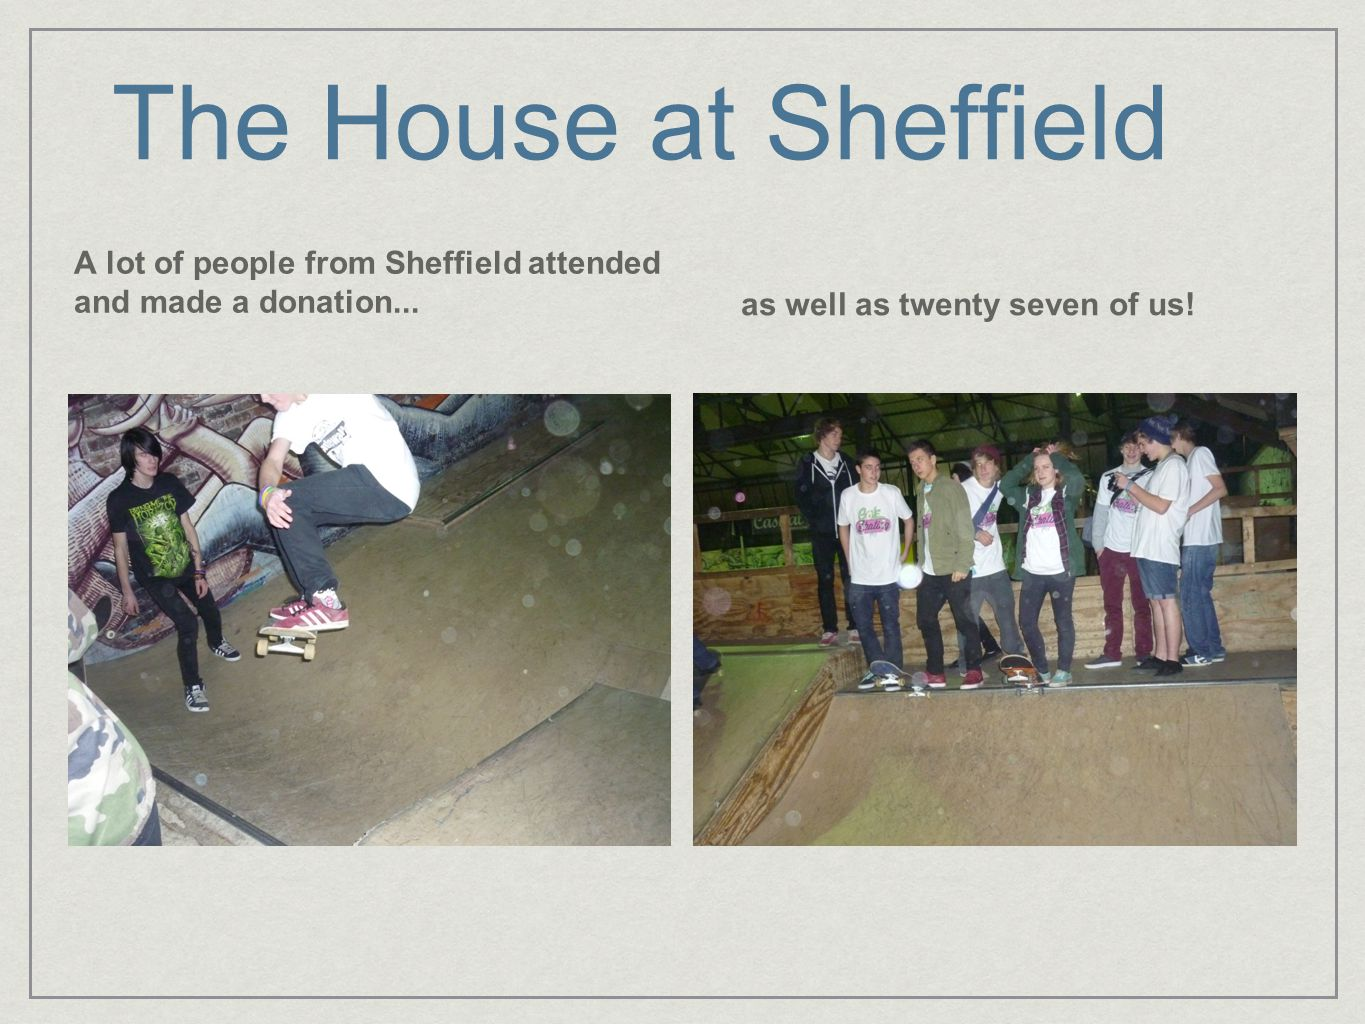 The House at Sheffield A lot of people from Sheffield attended and made a donation...